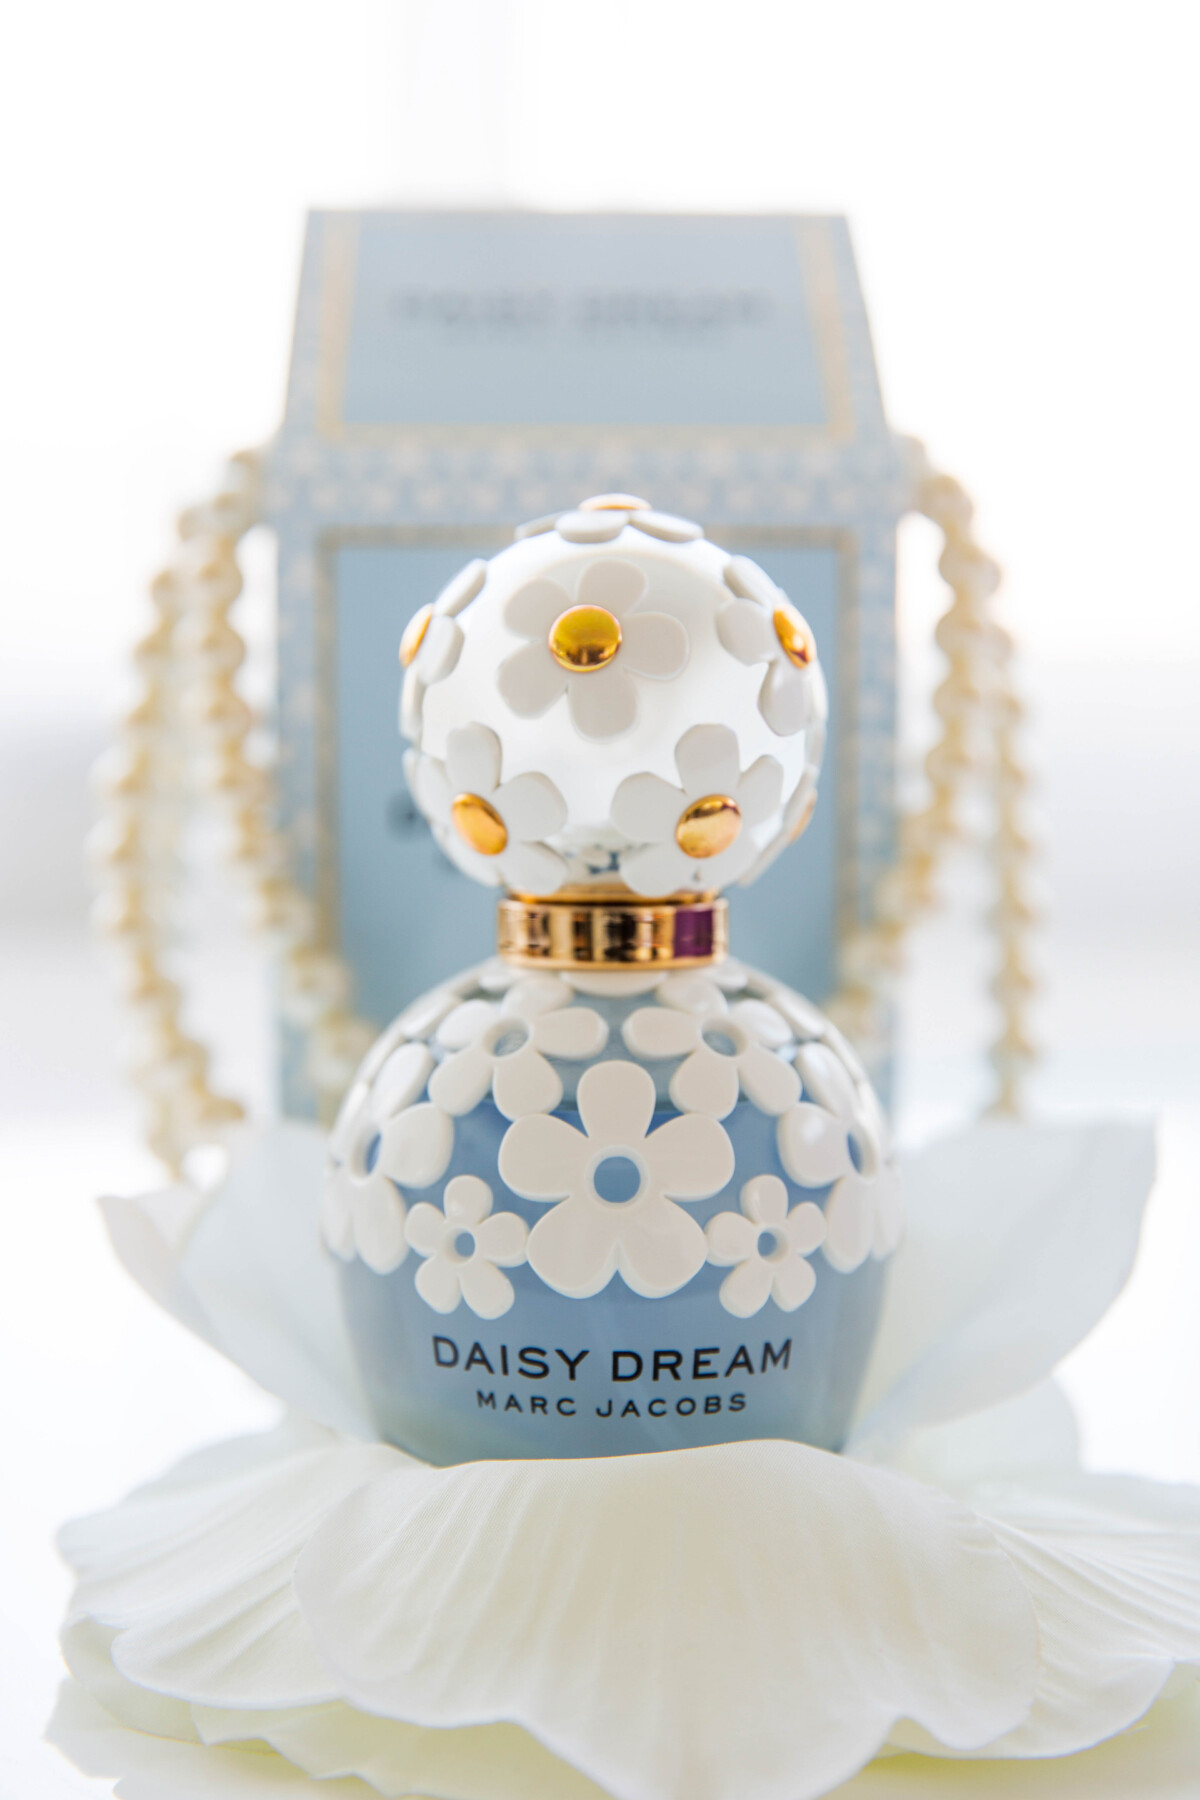 natural light product photography of Daisy dream from Marc Jacob